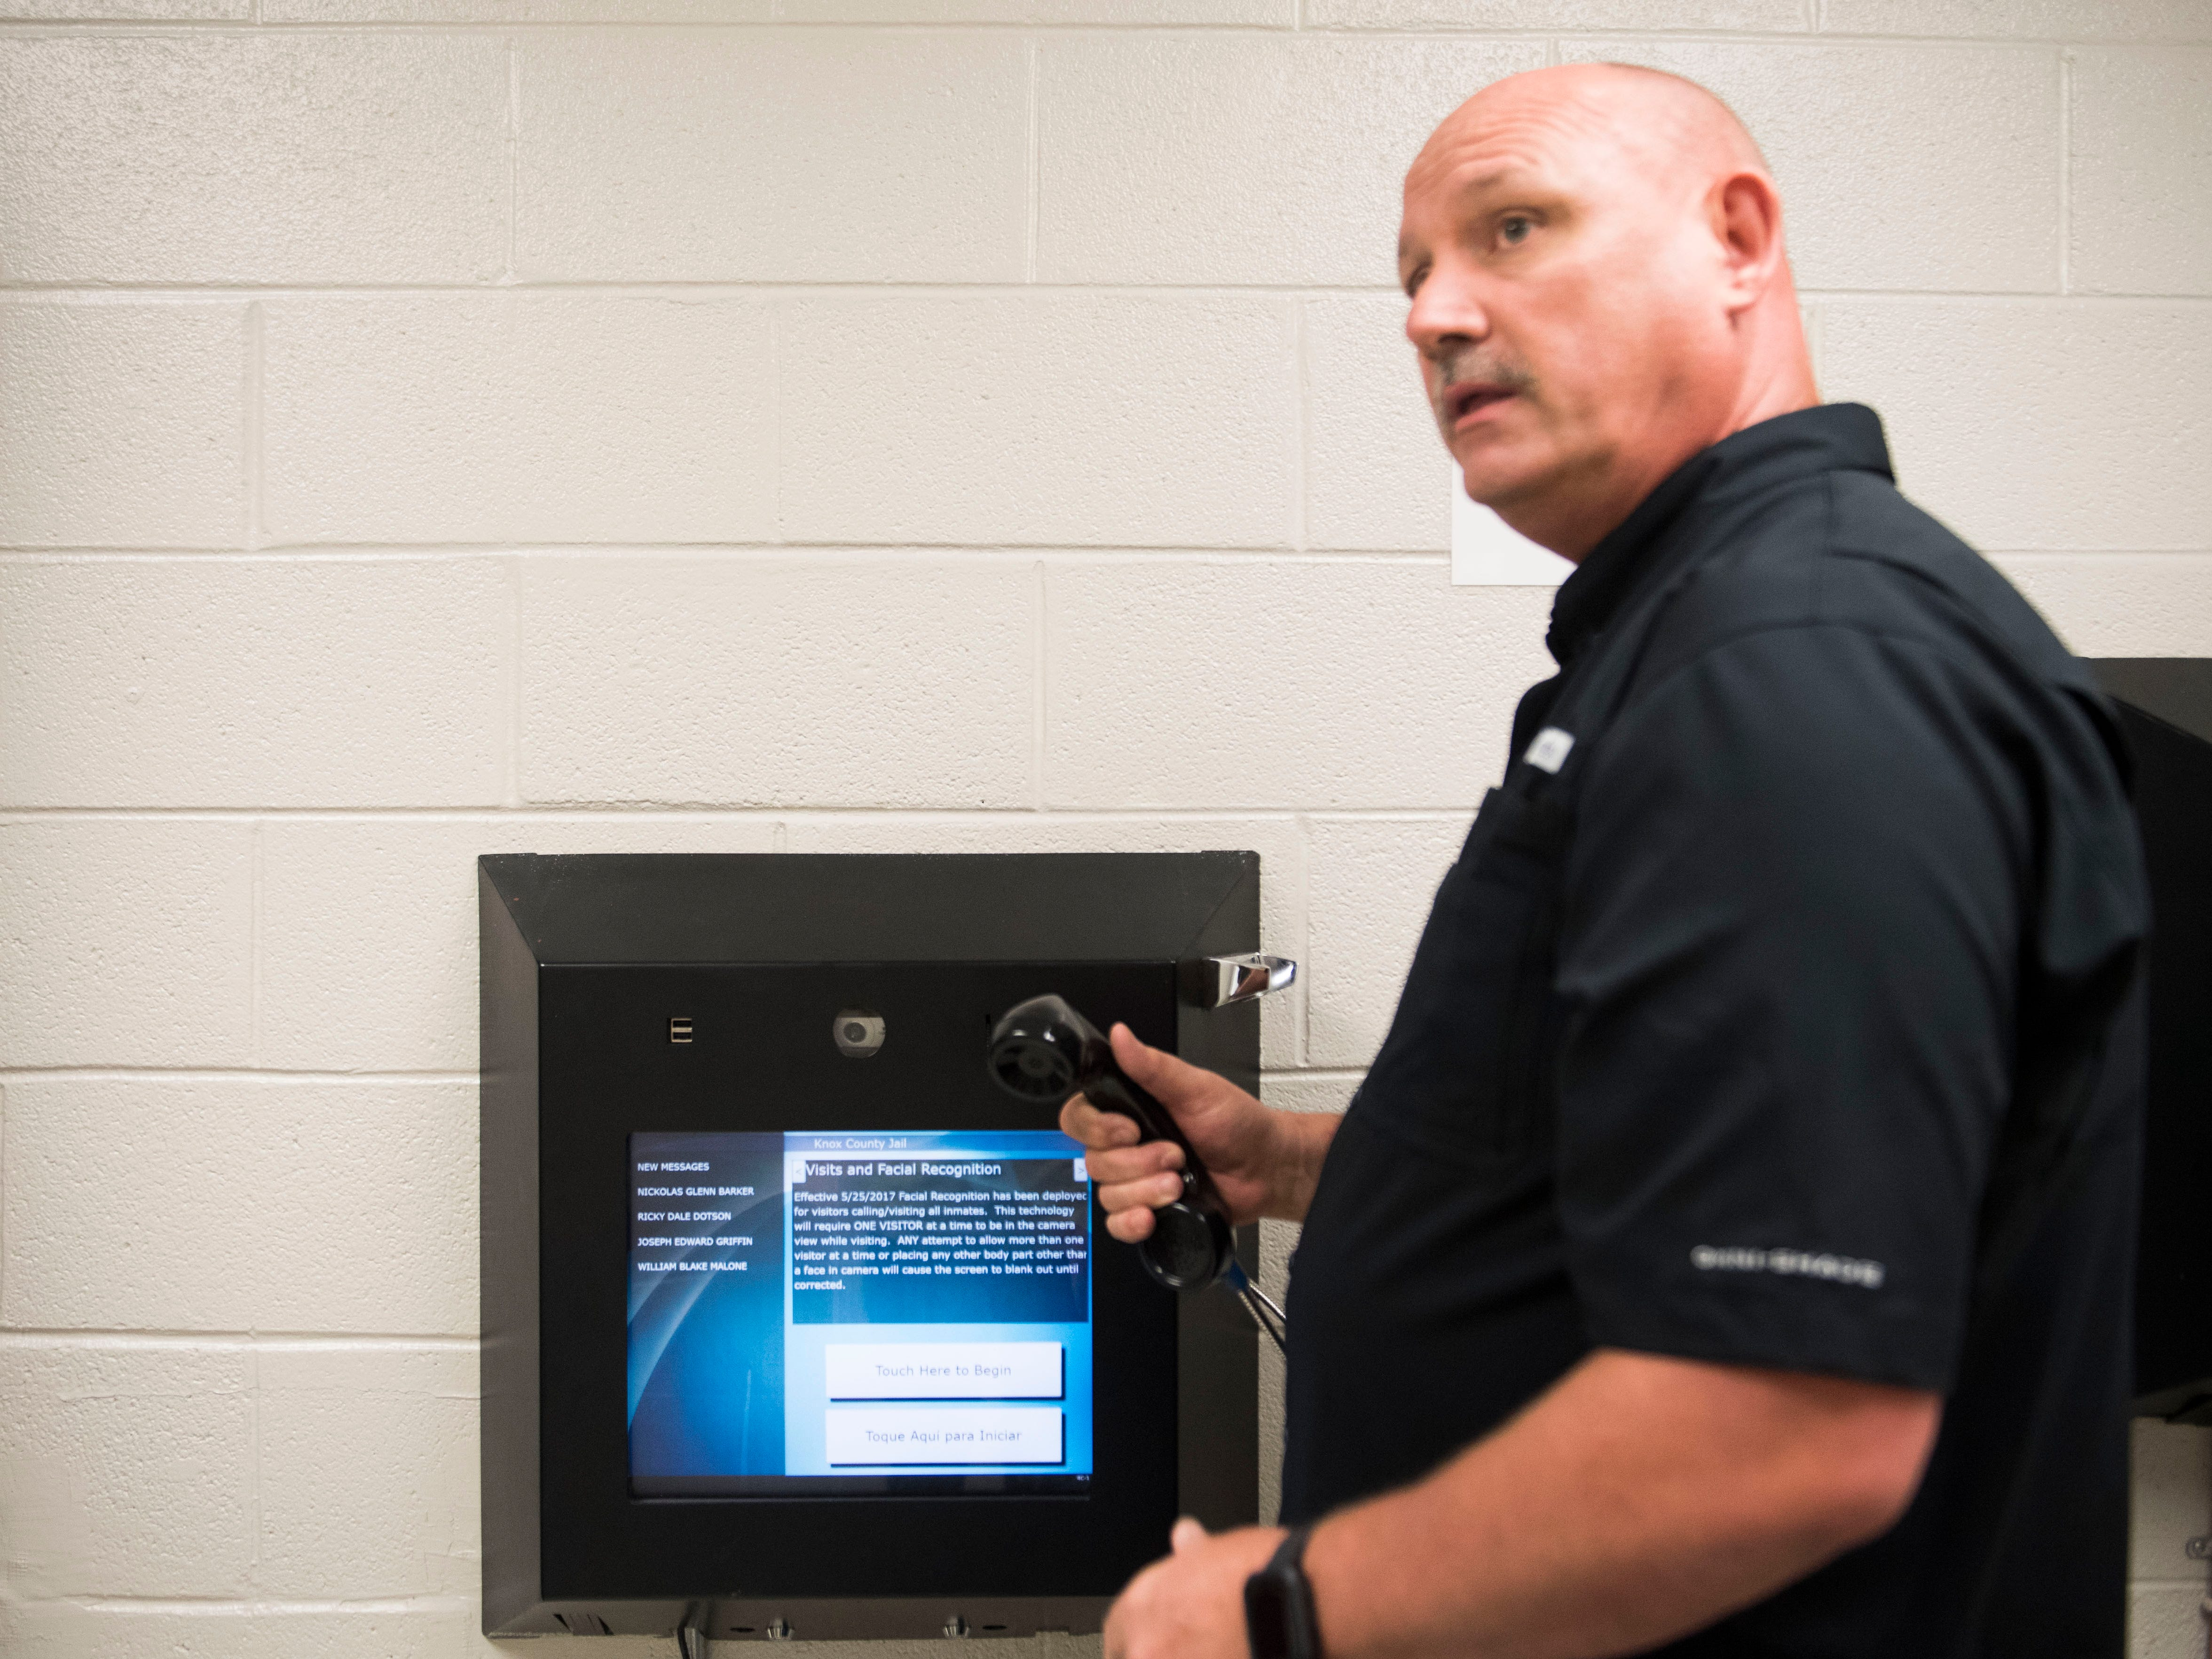 Director of Corrections for the Knox County Sheriff's Office, Rodney Bivens, demonstrates how video visitation works at the Knox County Jail in Knox County Tuesday, May 15, 2018.